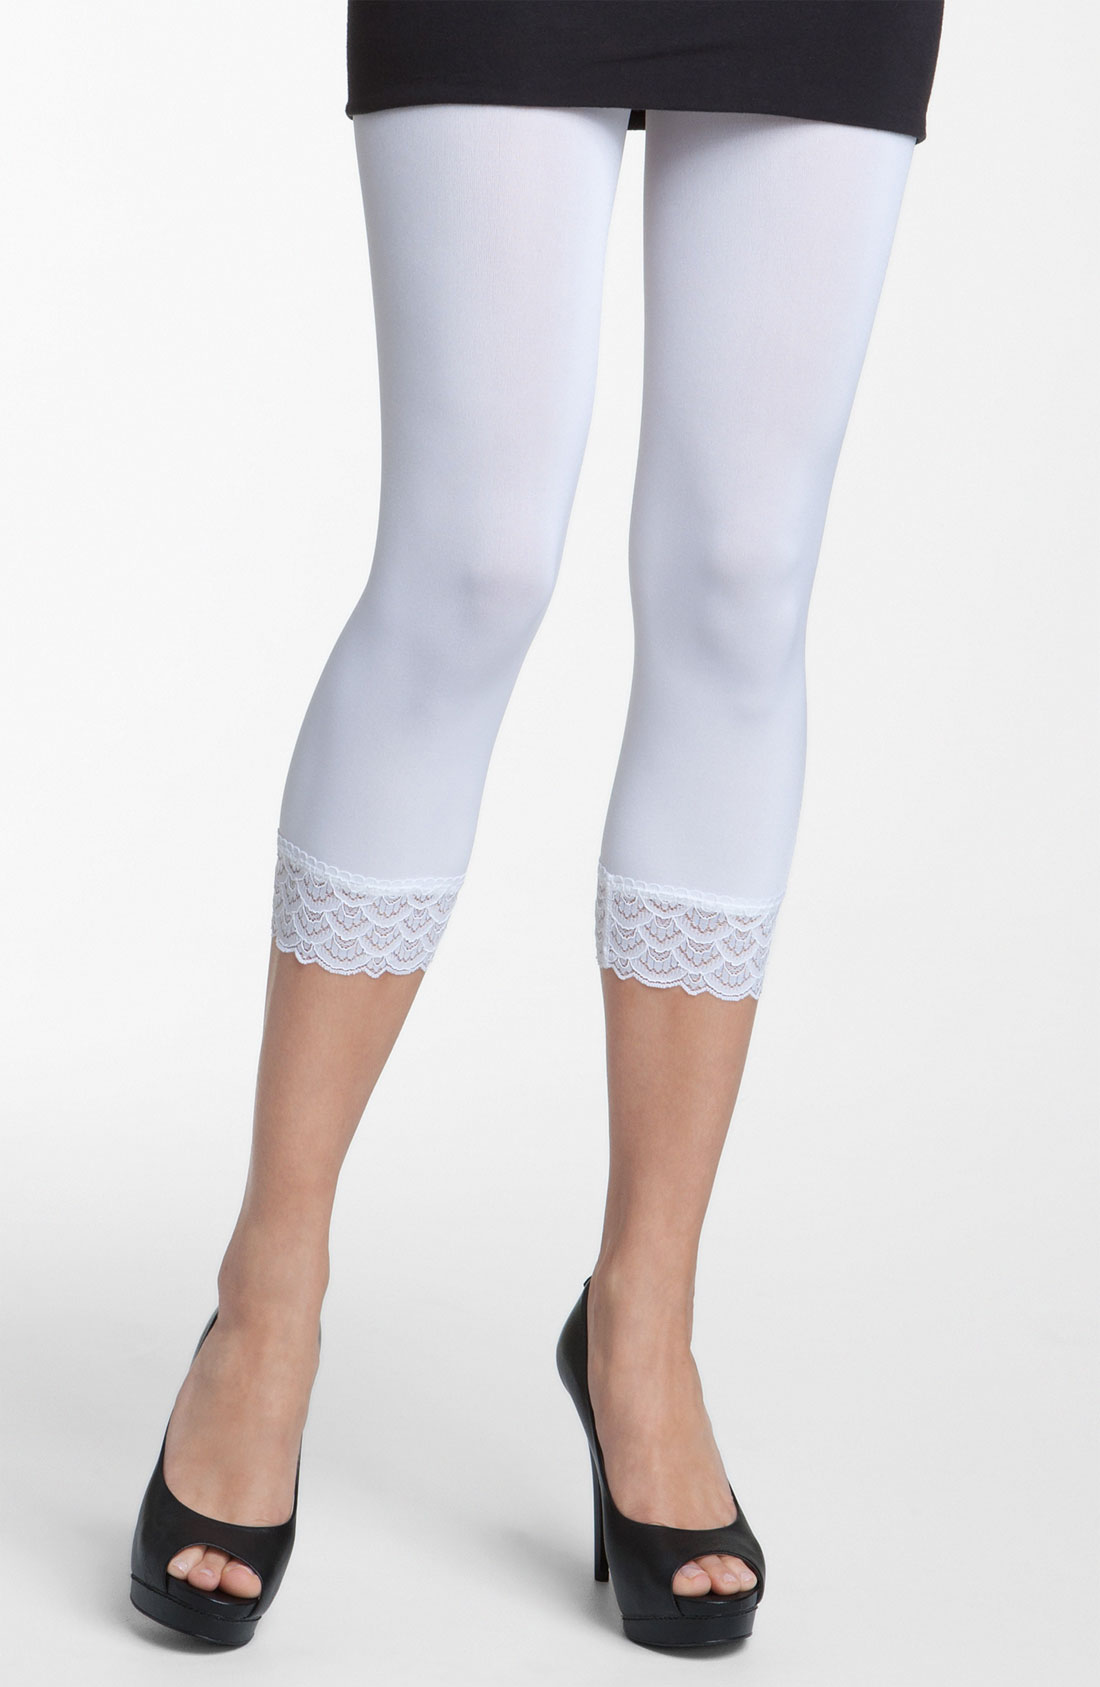 Images of White Capri Jeggings - Watch Out, There's a Clothes About